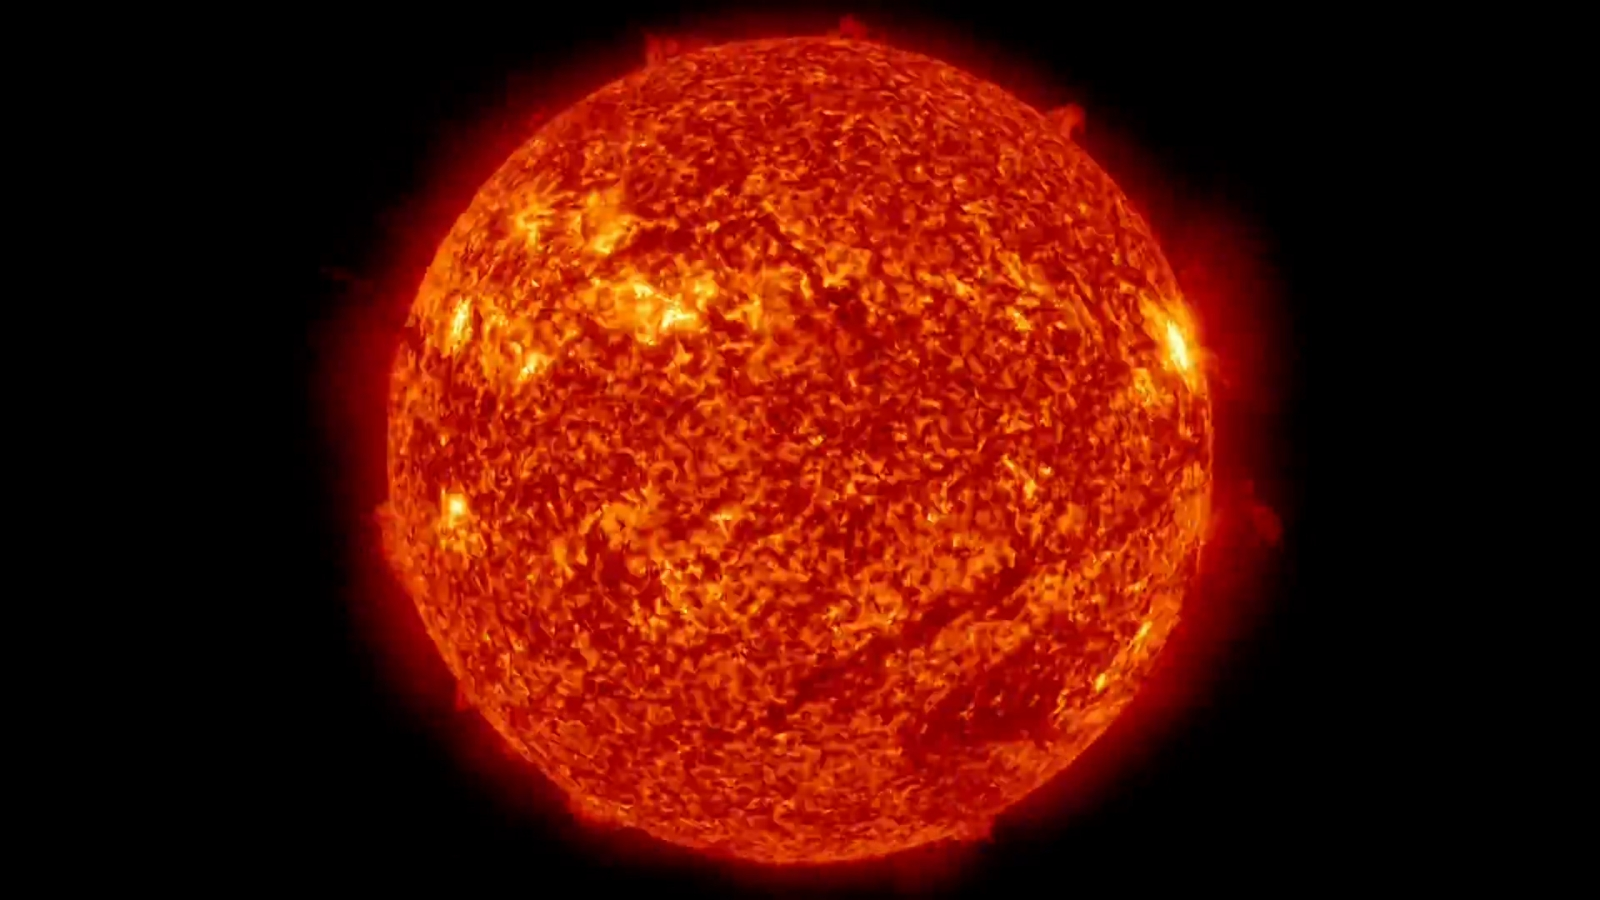 Incredible five year time-lapse video of the sun released by Nasa